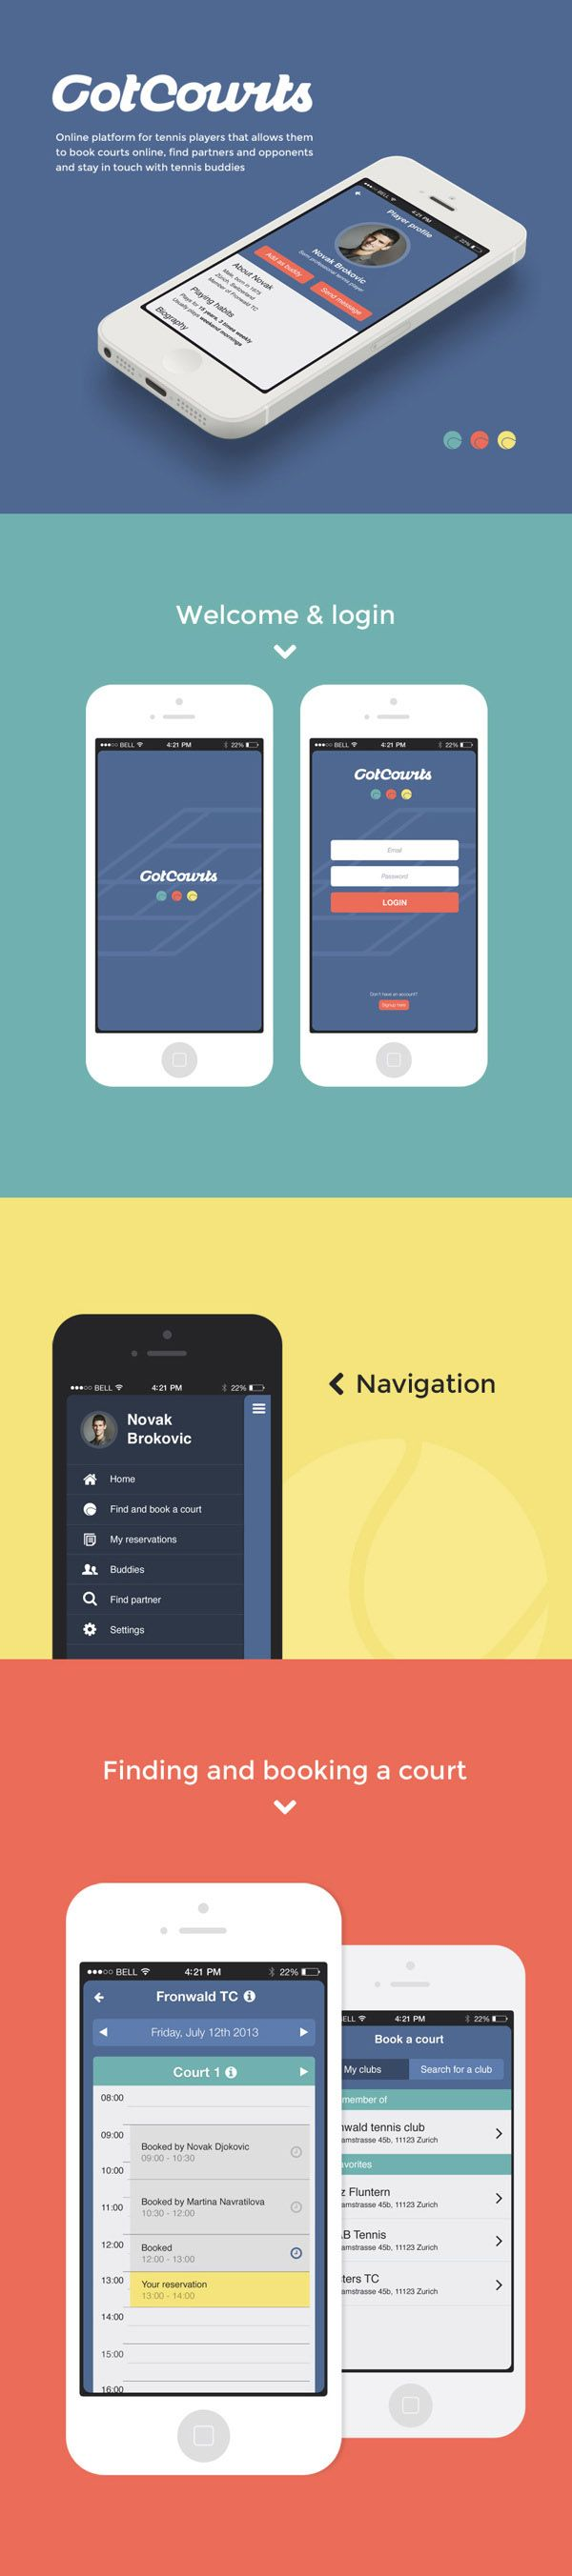 Mobile UI Design Inspiration #3